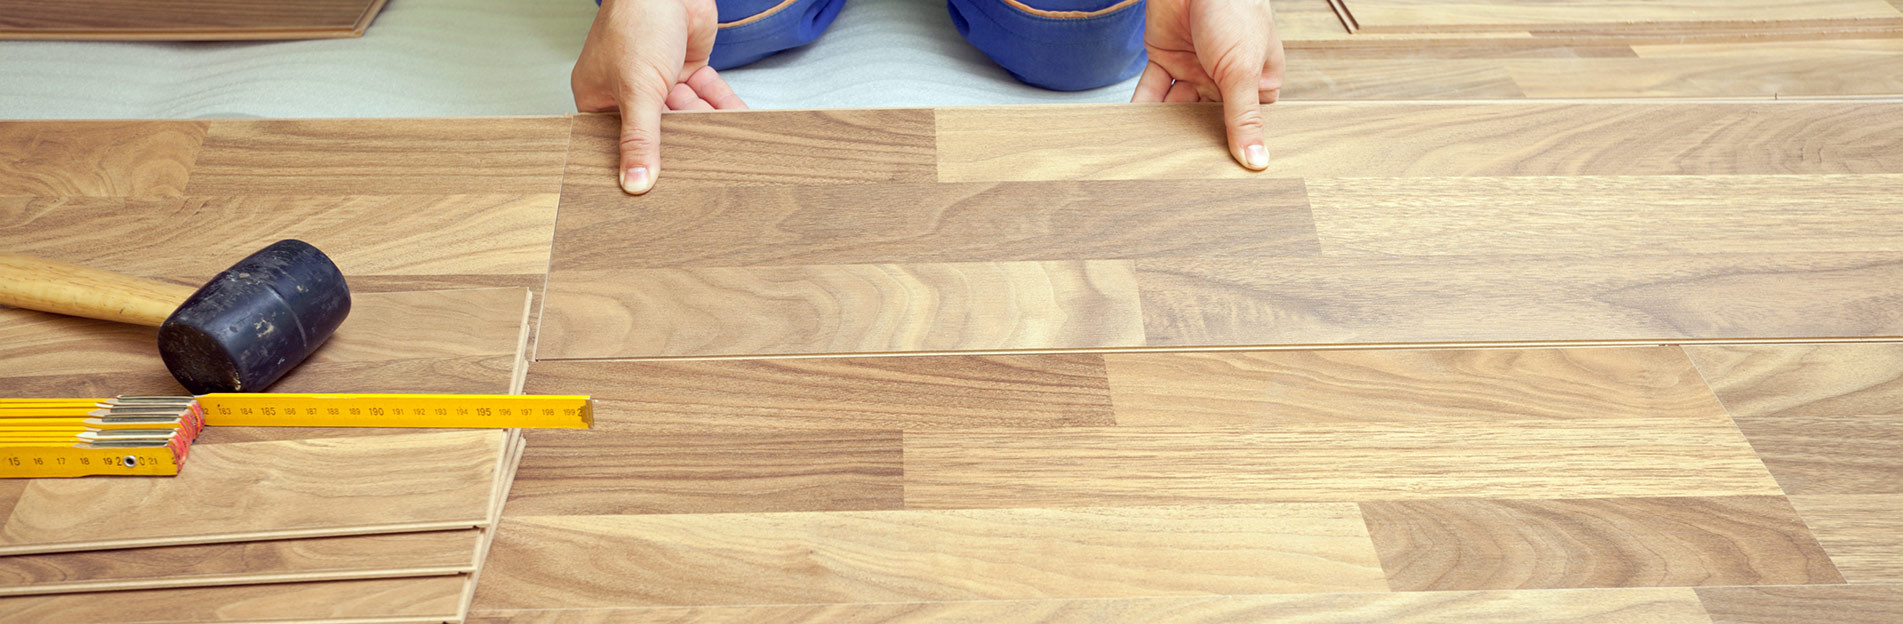 hardwood floor refinishing okc of flooring store in oklahoma city ok flooring contractor inside wood flooring installation service